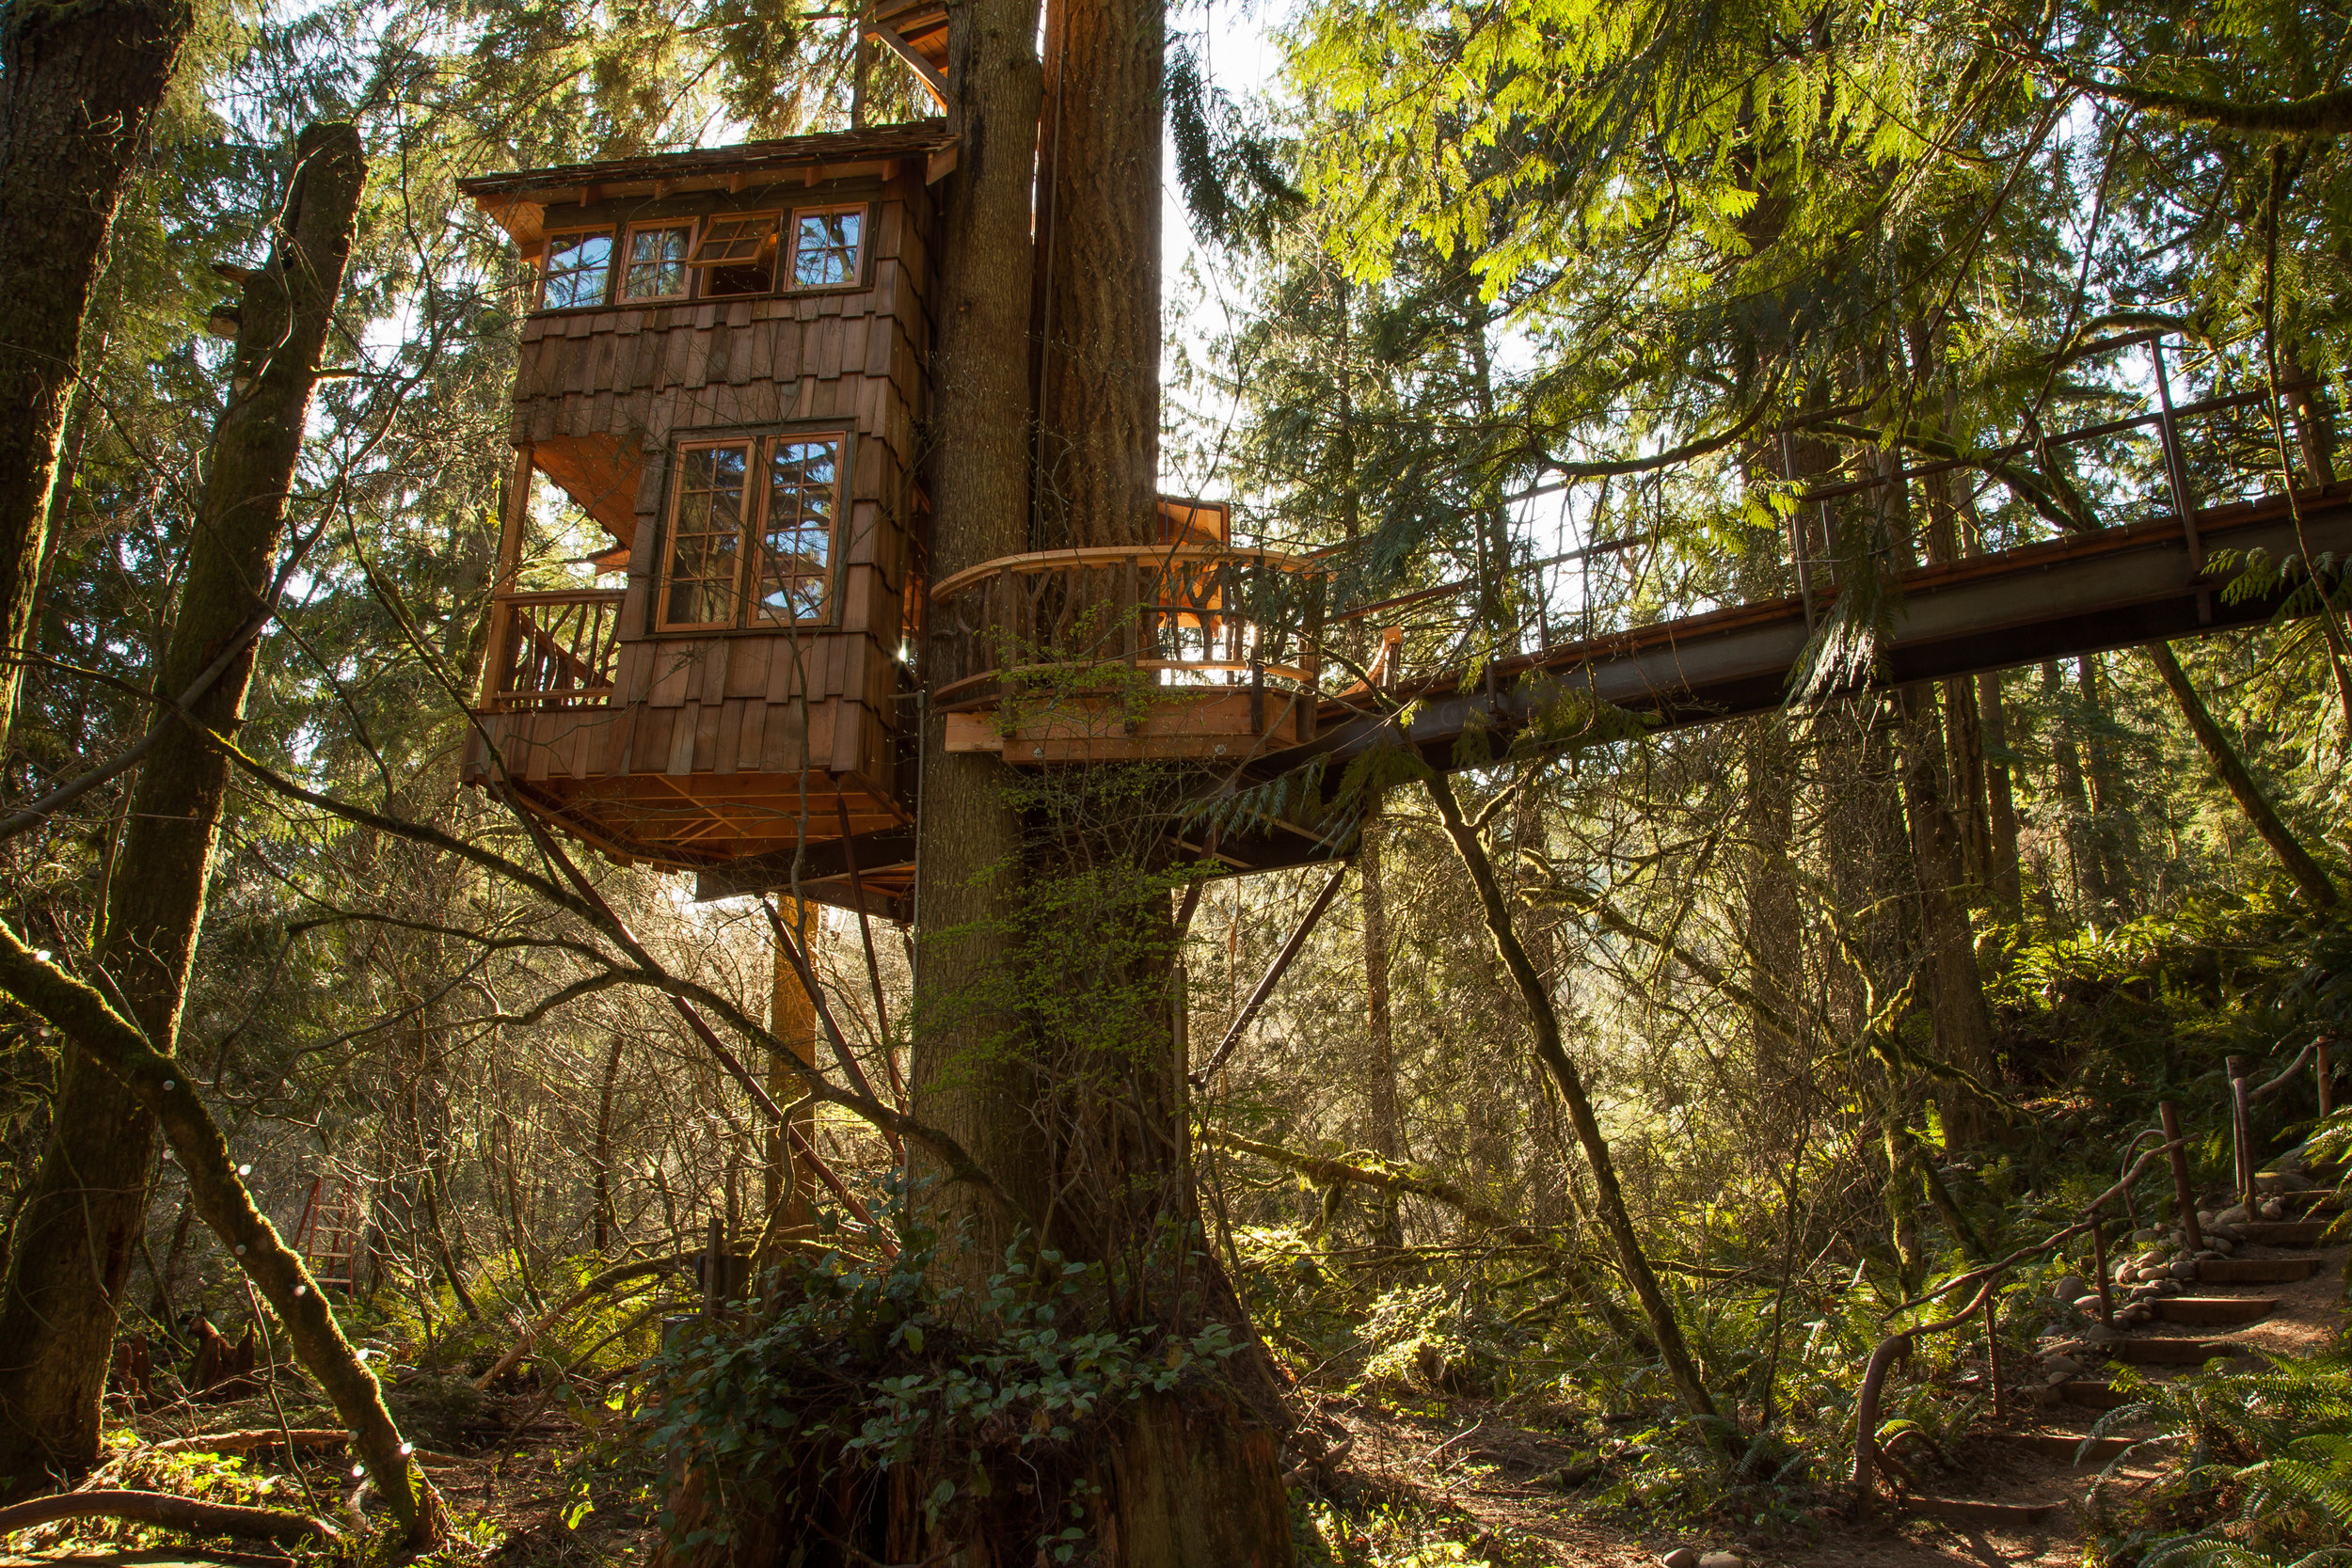 The Burl at Treehouse Point